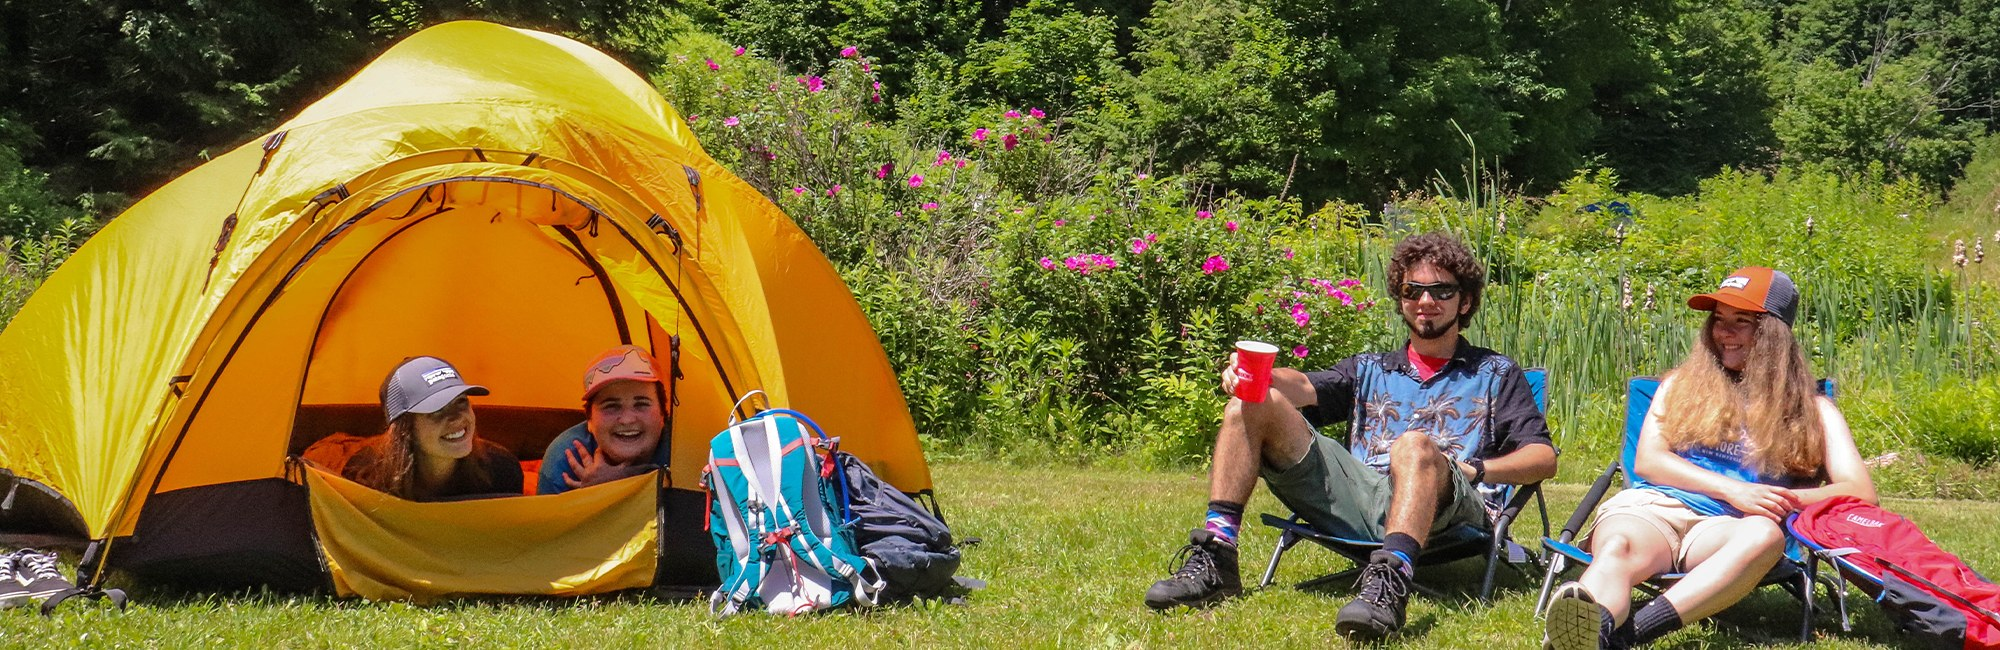 Yellow tent with people camping